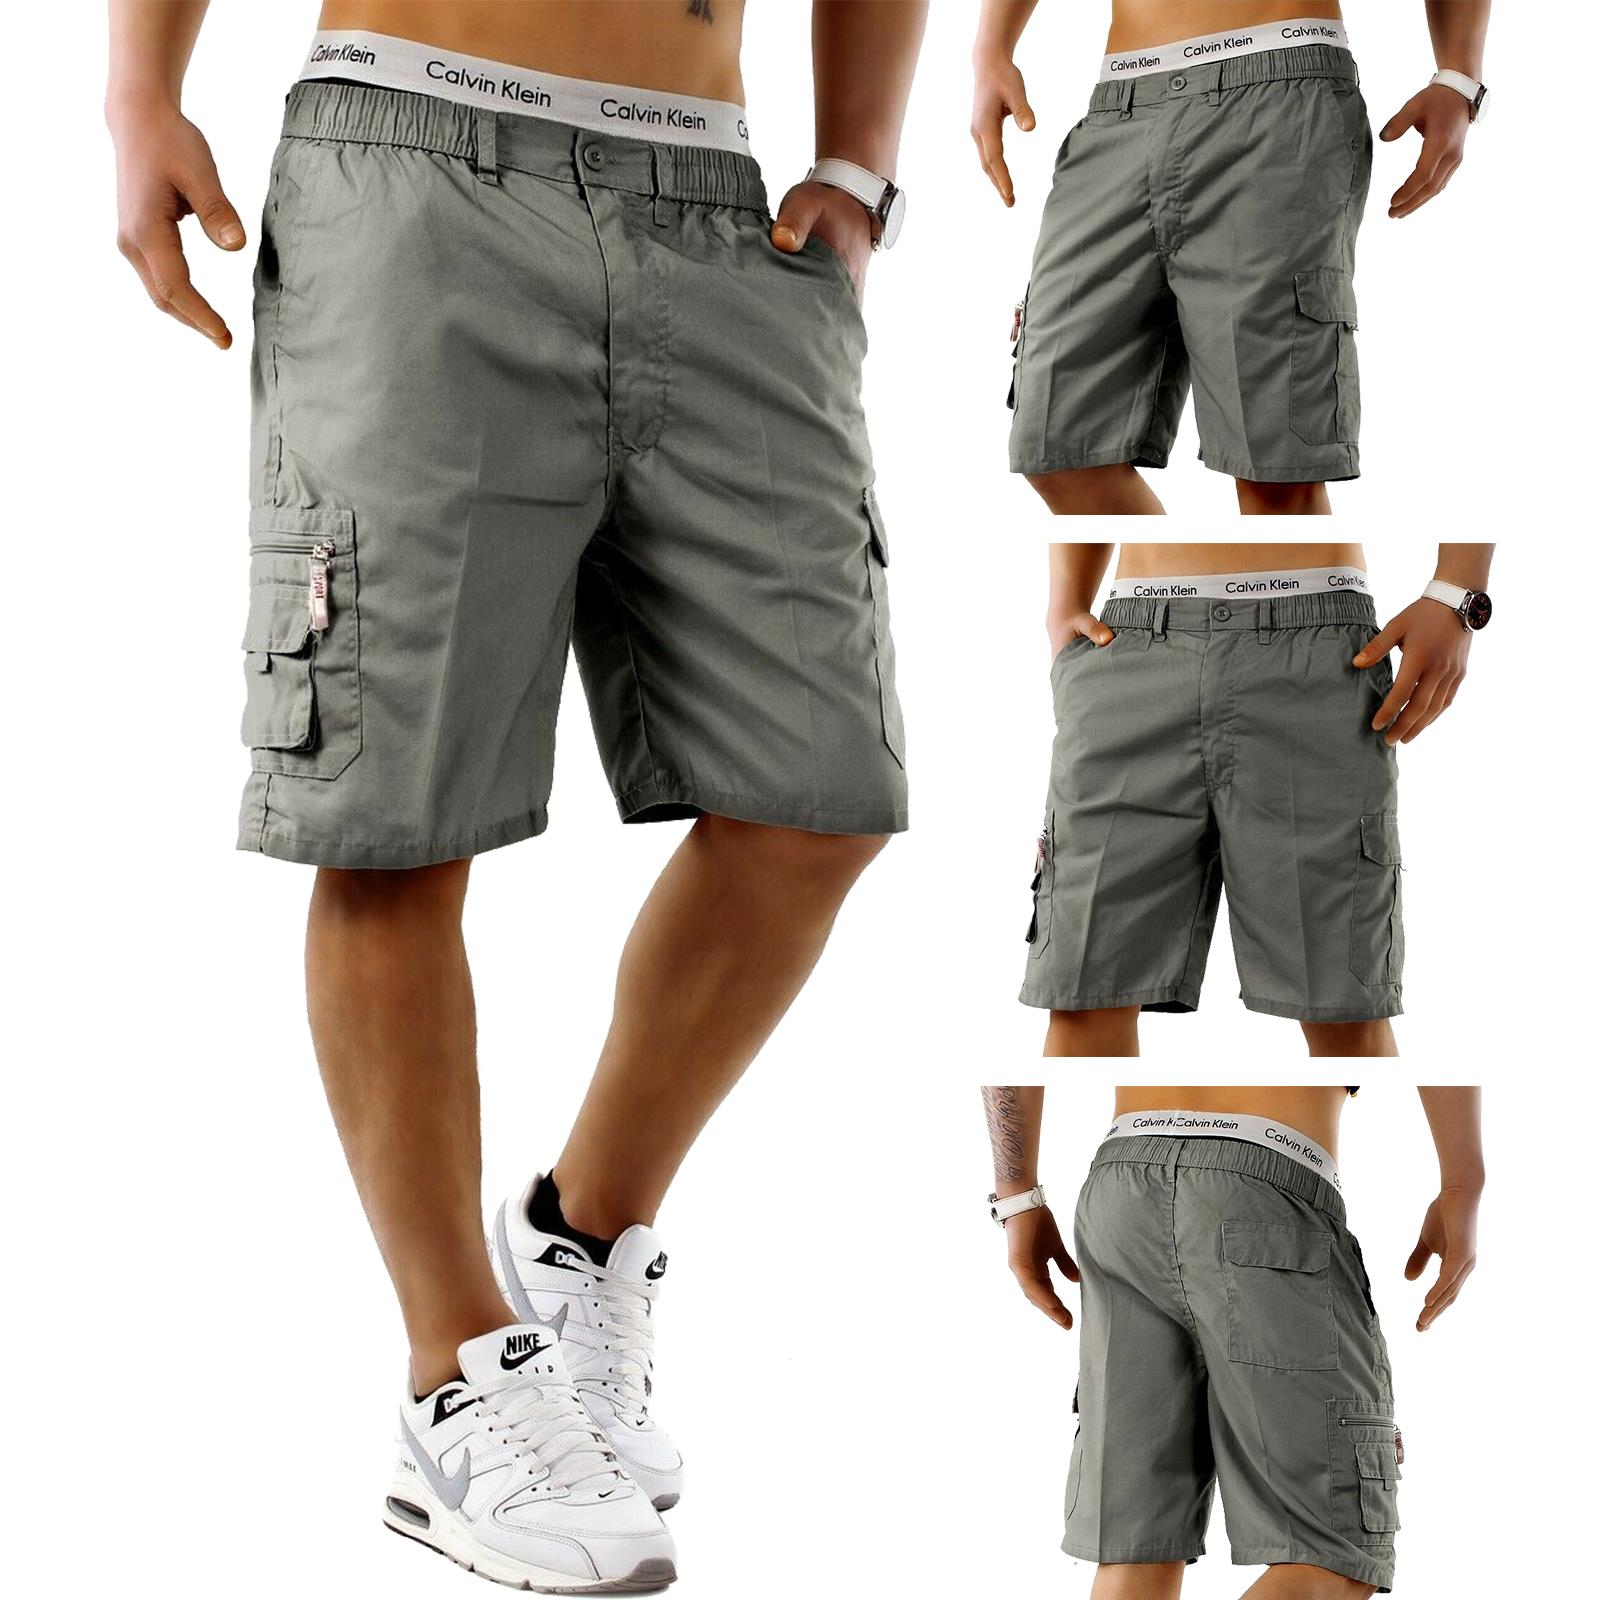 Mens-Cargo-Shorts-Elasticated-Waist-Casual-Cotton-Combat-Pants-M-L-XL-2XL-3XL thumbnail 4